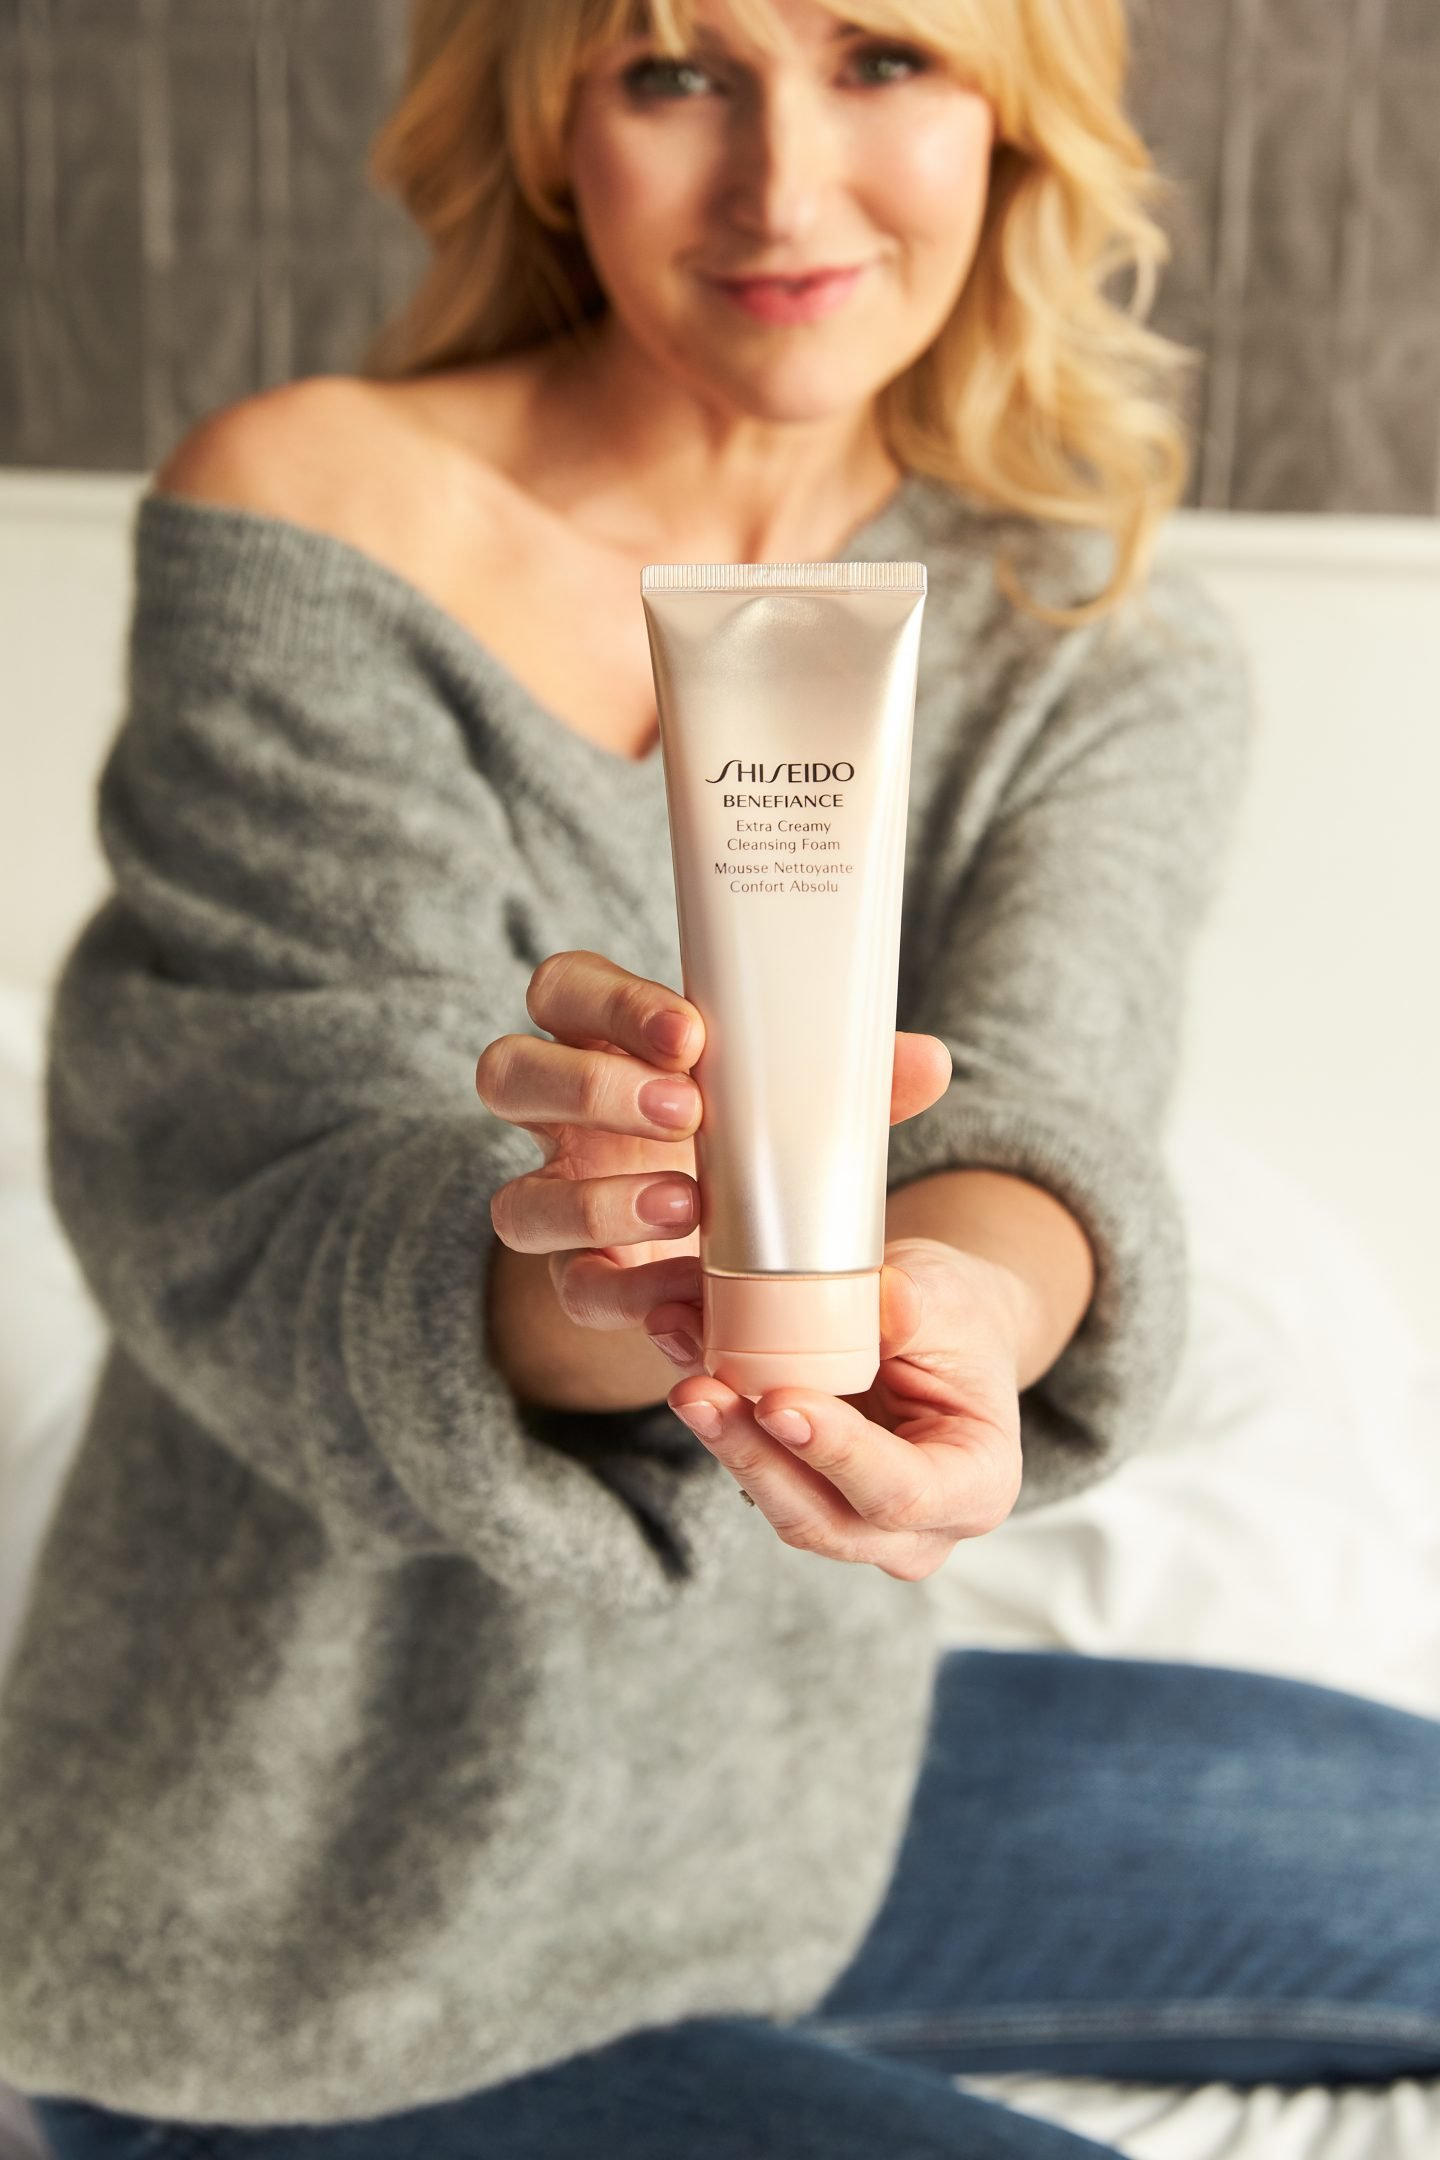 Extra Creamy Cleansing Foam Review - Nowshine Beauty Blog ü40